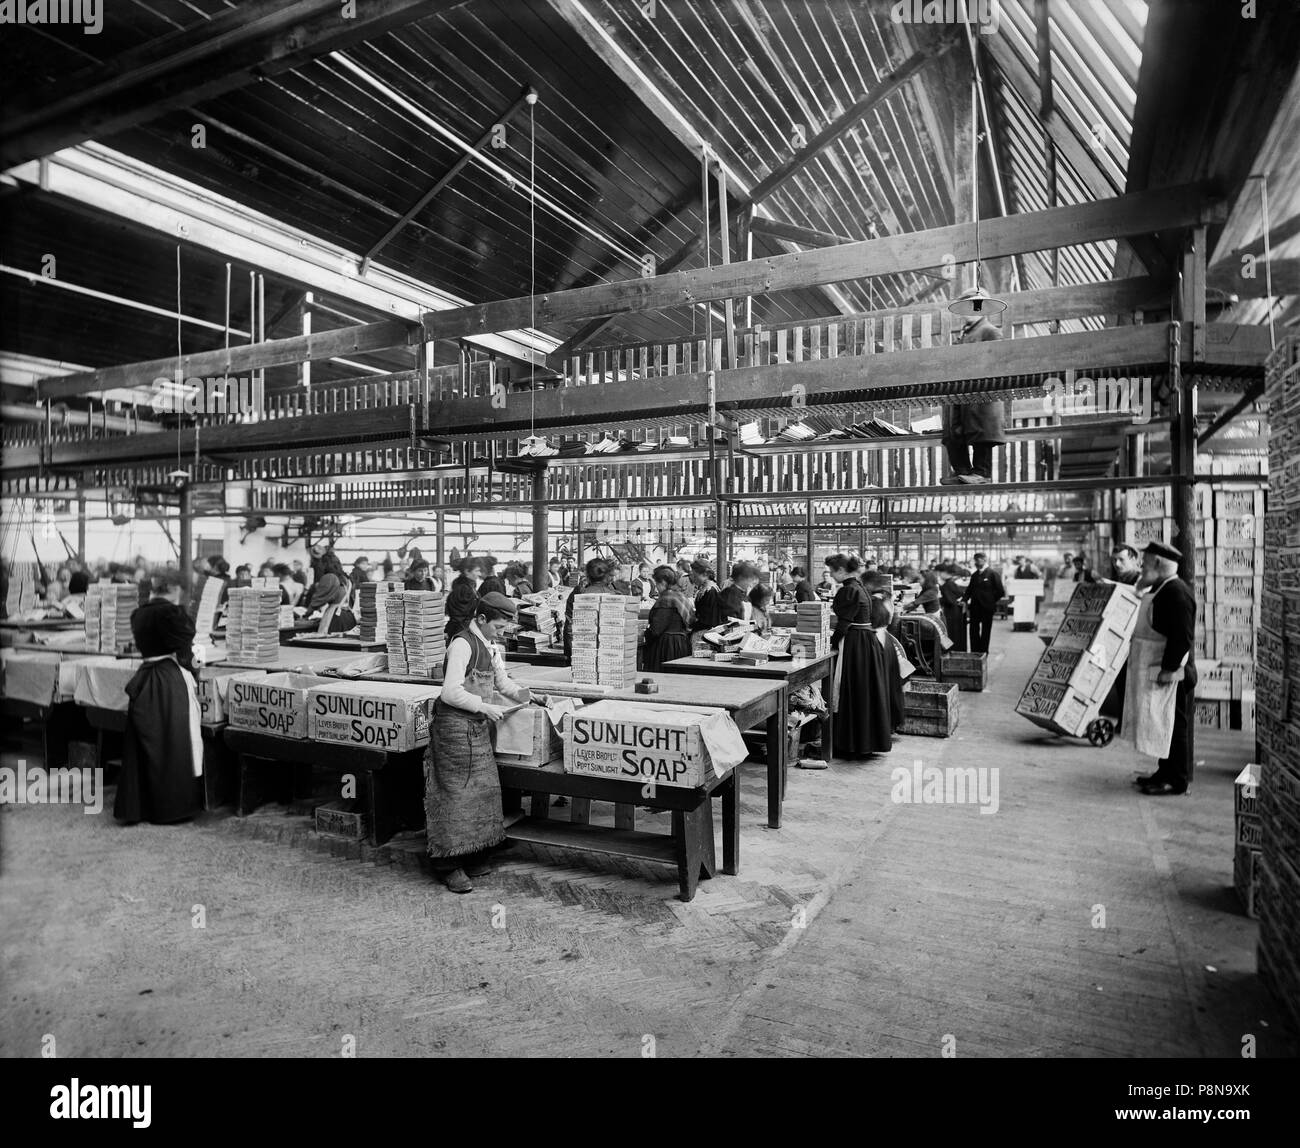 Lever Brothers Sunlight Soap Works, Port Sunlight, Wirral, Merseyside, 1897. Interior view showing workers packing soap boxes. - Stock Image